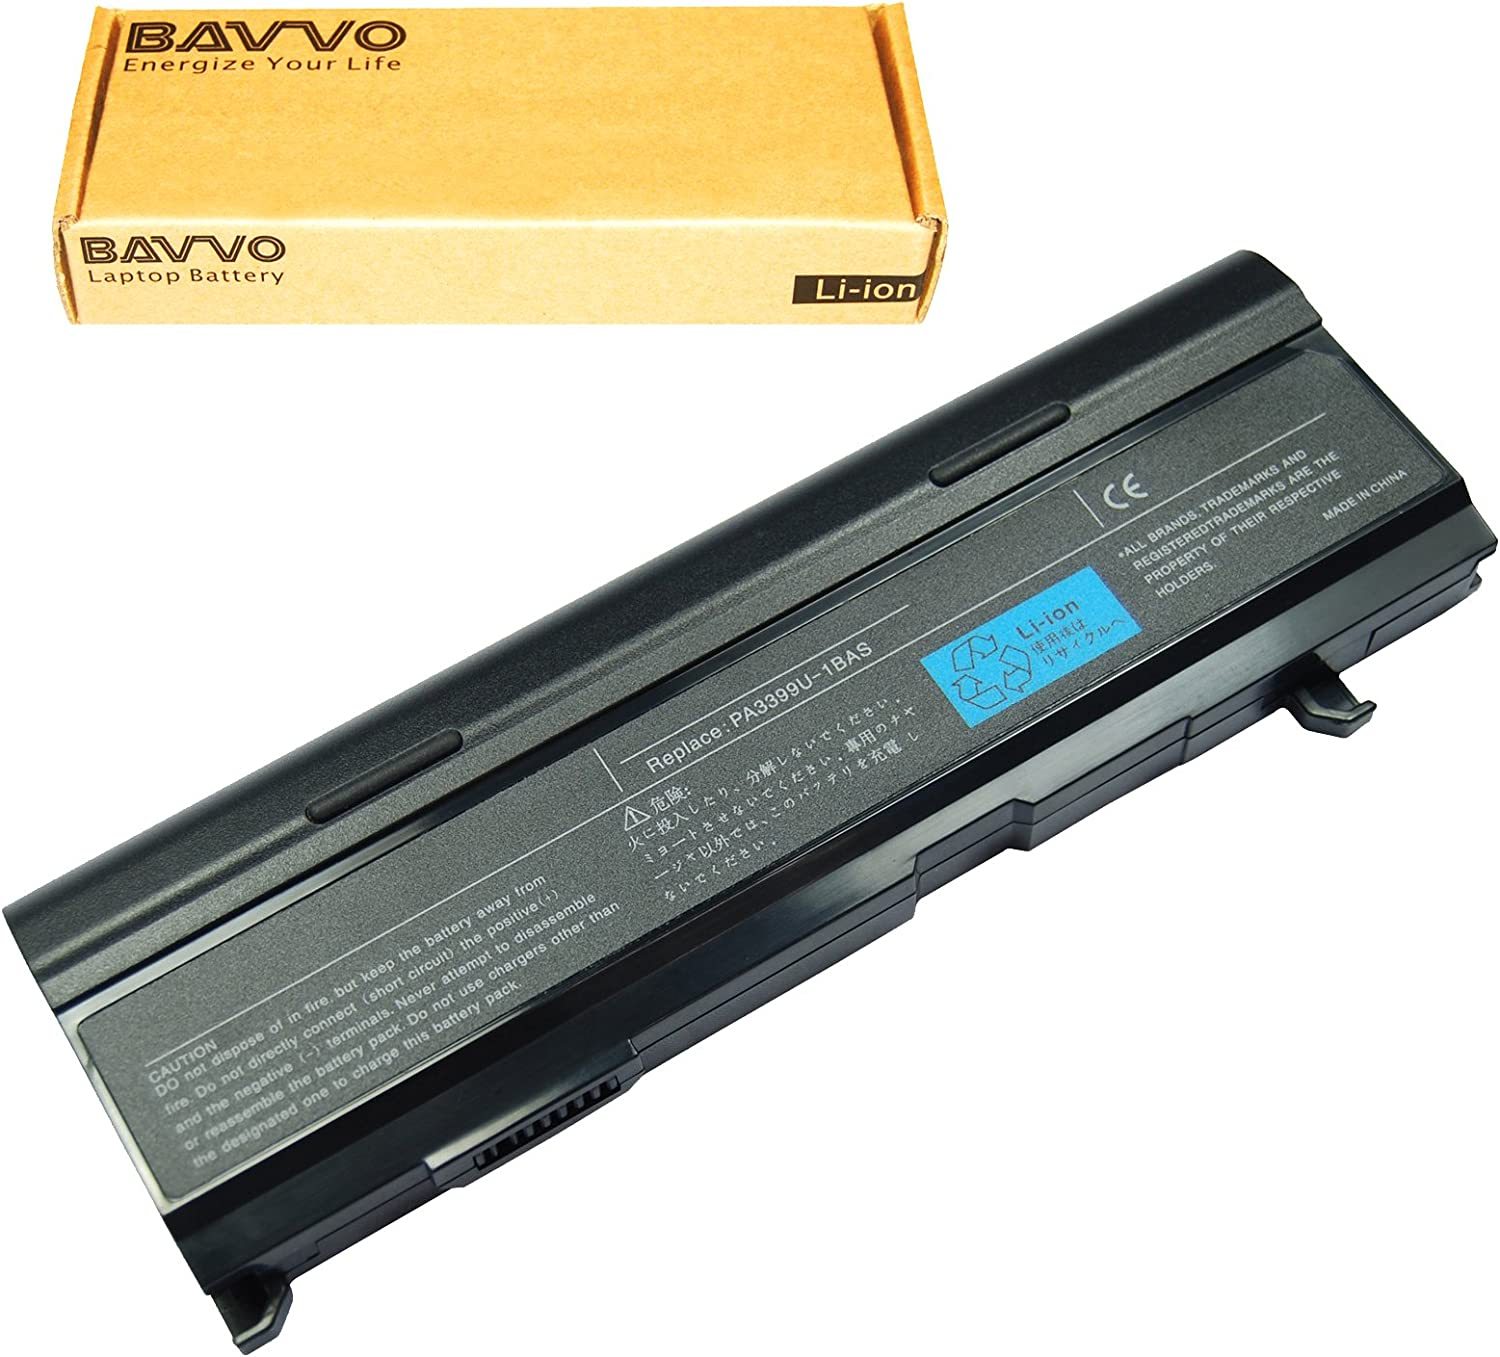 Bavvo 9-Cell Battery Compatible with Toshiba PA3399U-1BRS PA3399U-2BAS PA3399U-2BRS PA3478U-1BAS PA3478U-1BRS PABAS057 PABAS076 PABAS077